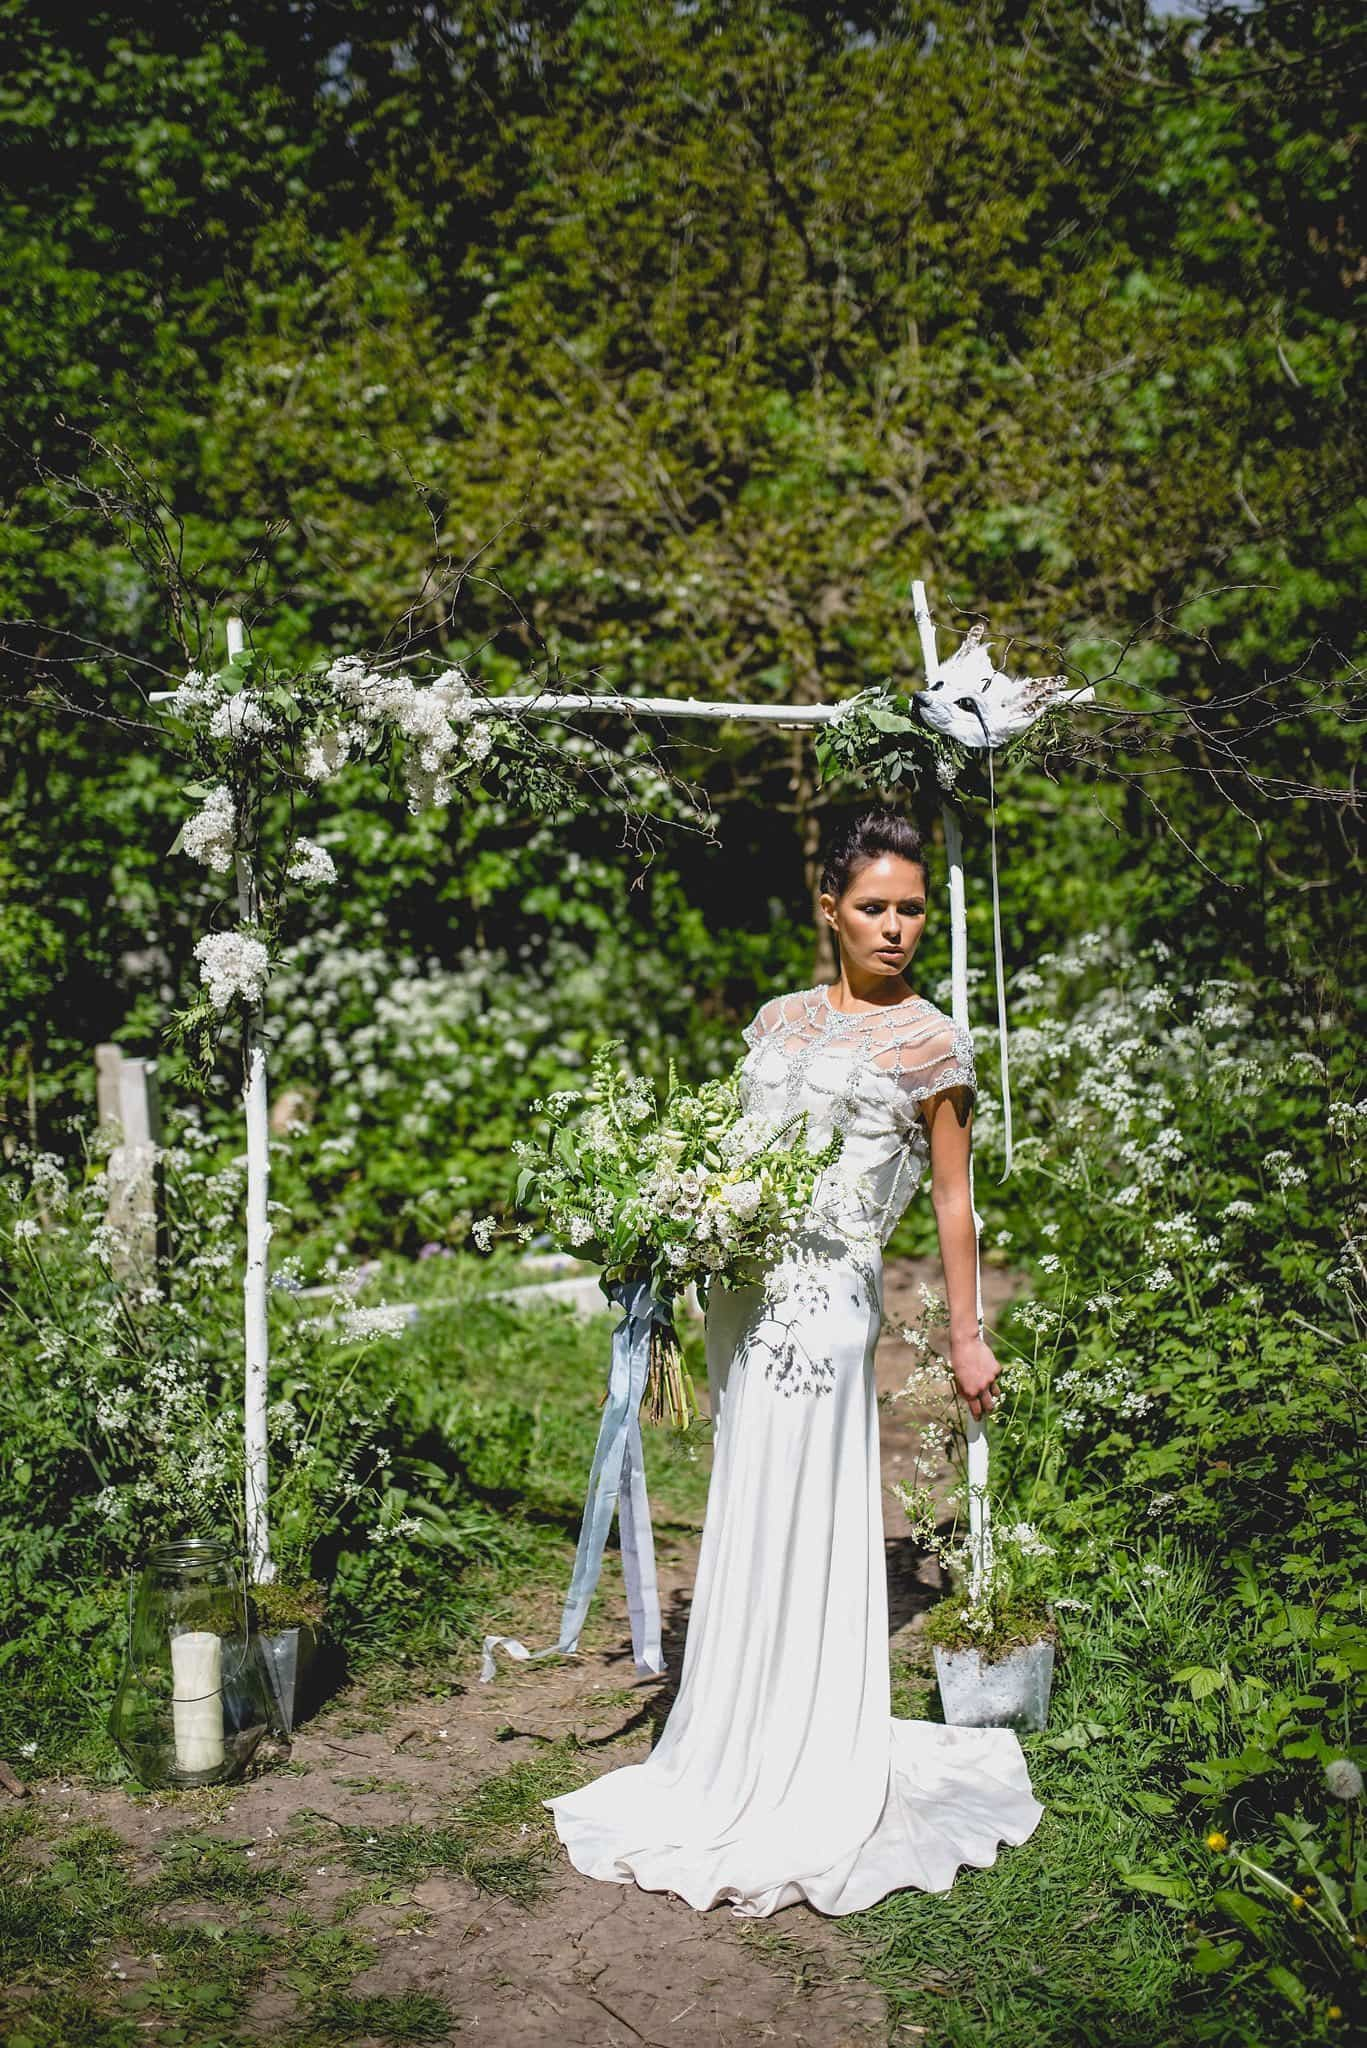 Bride leans against wooden arch decorated with flowers, with feather fox mask in top right corner